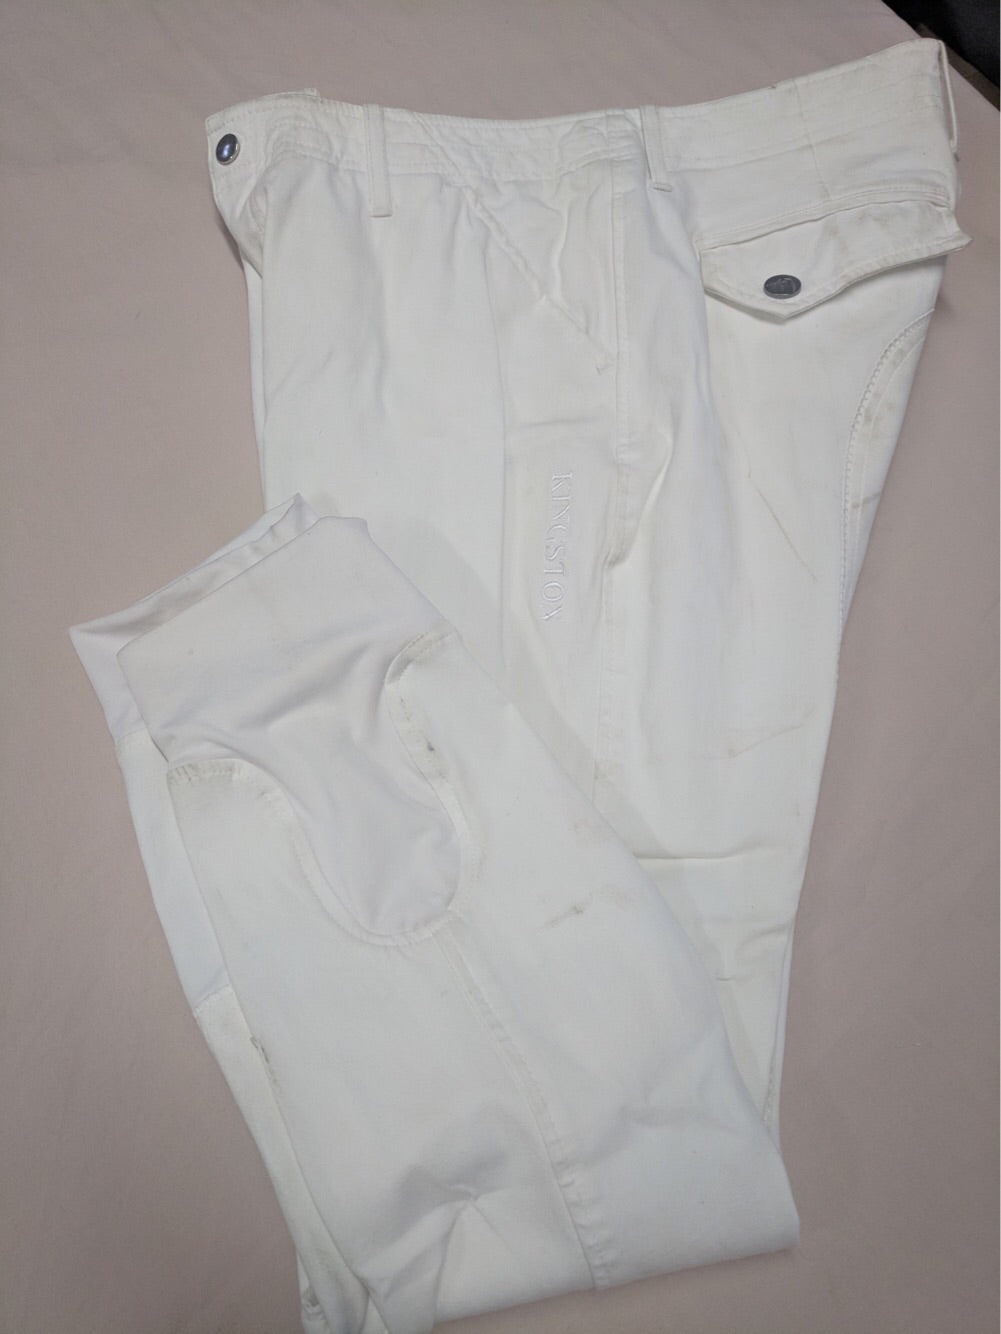 HKM Men's Breeches White size 52 (1299935592550)